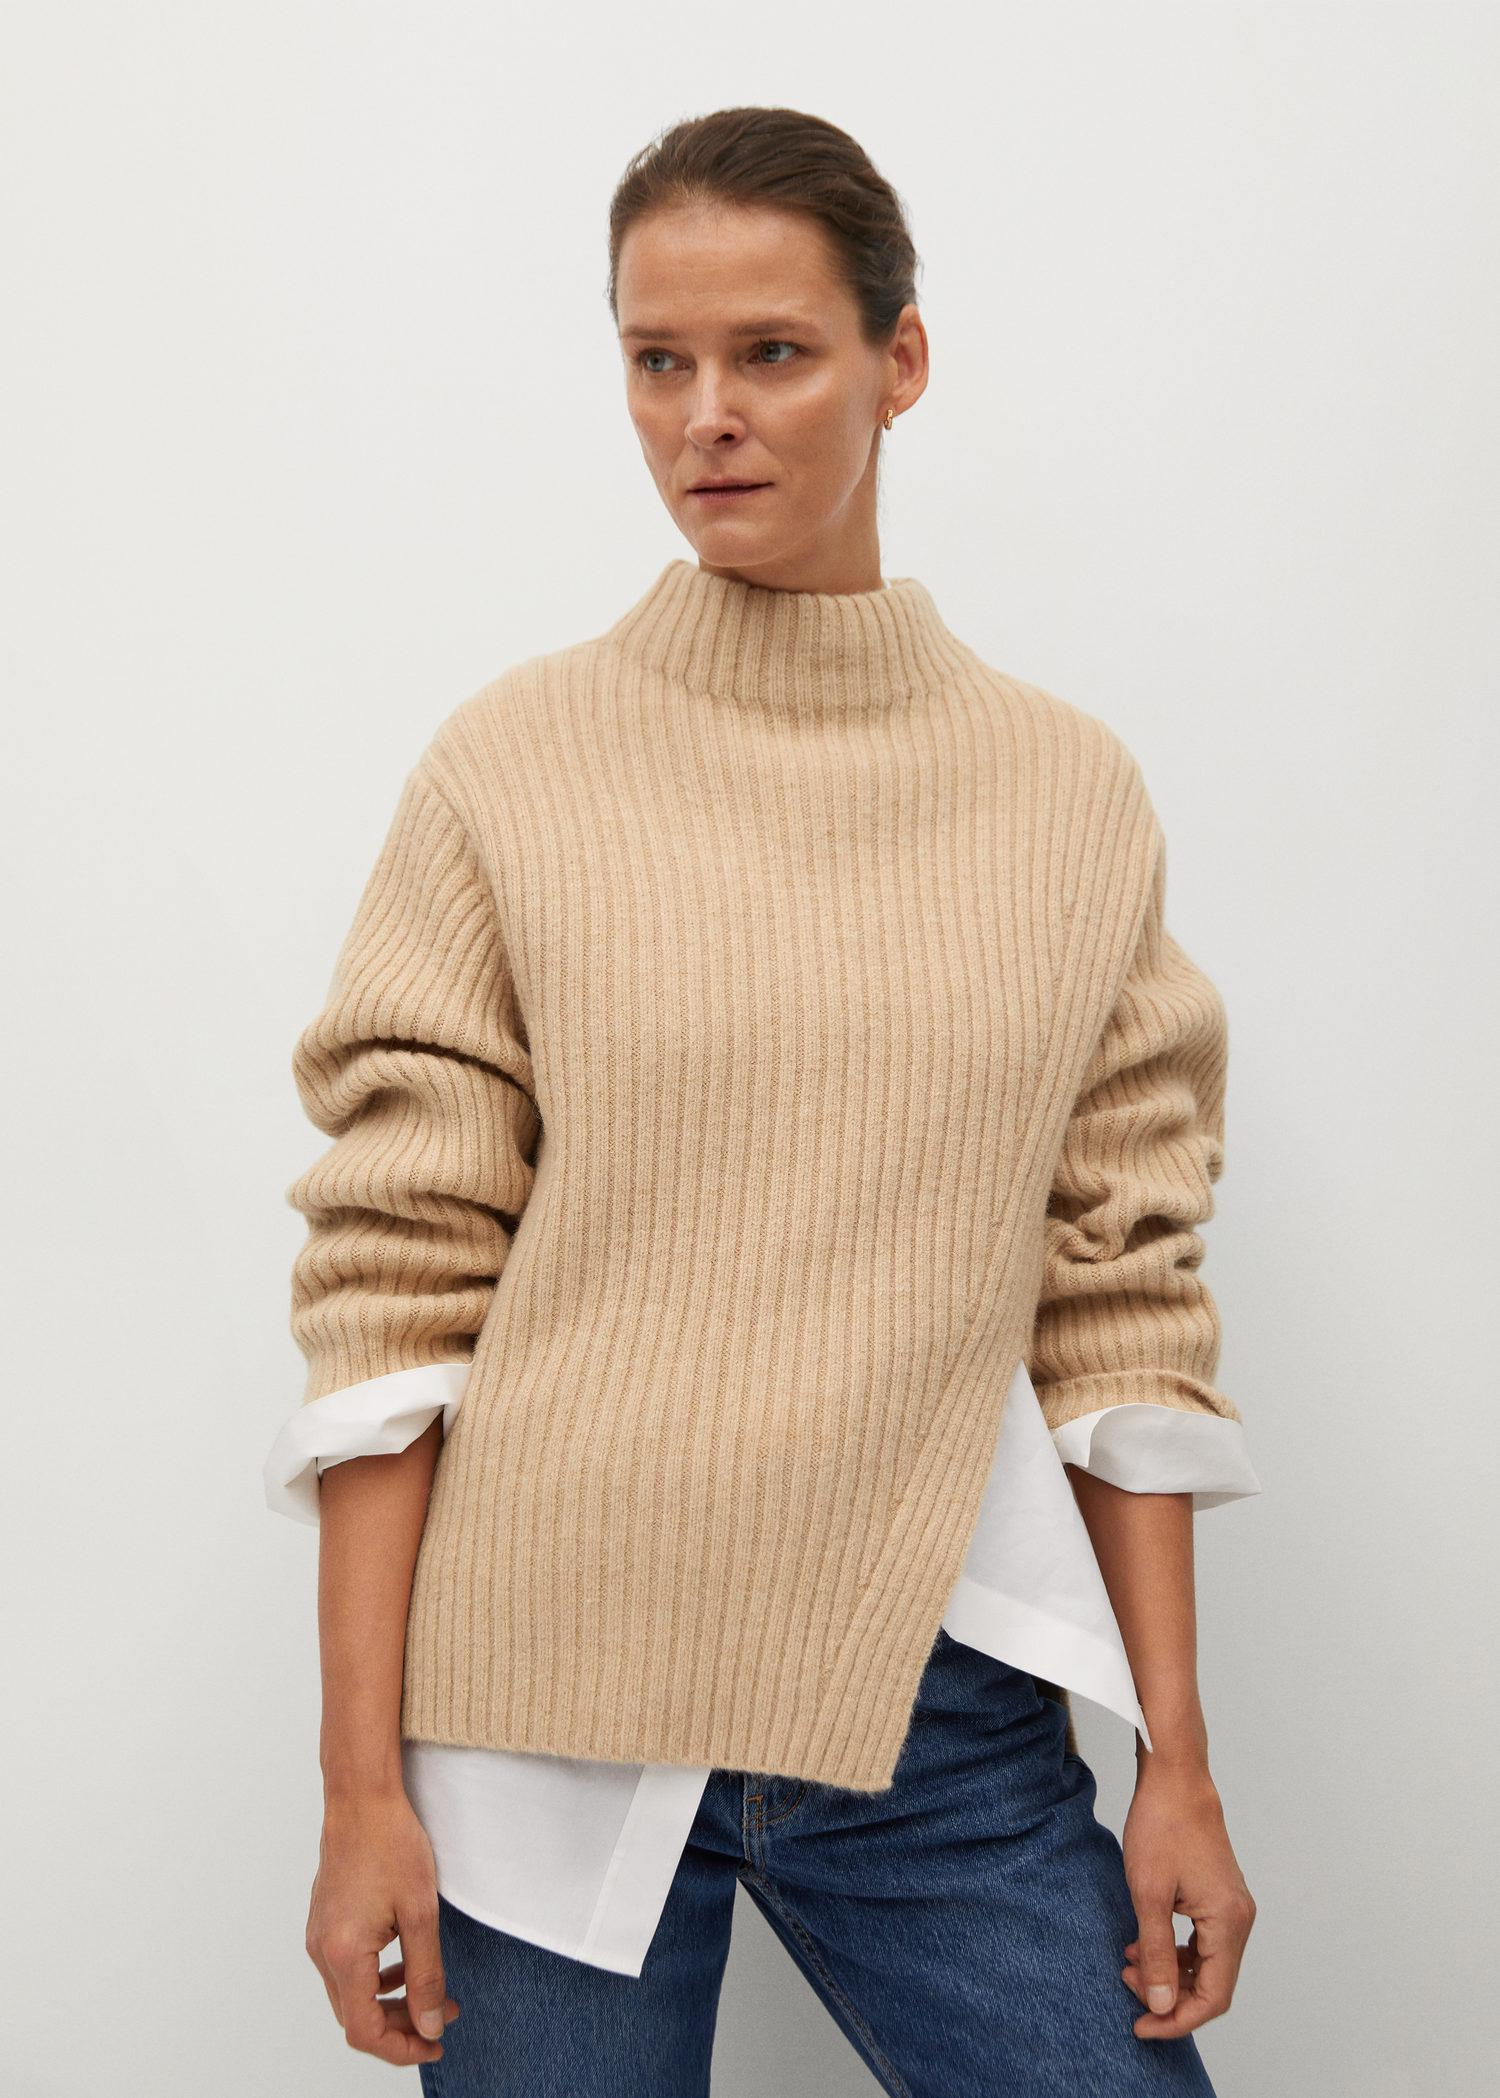 Cut-out knitted sweater